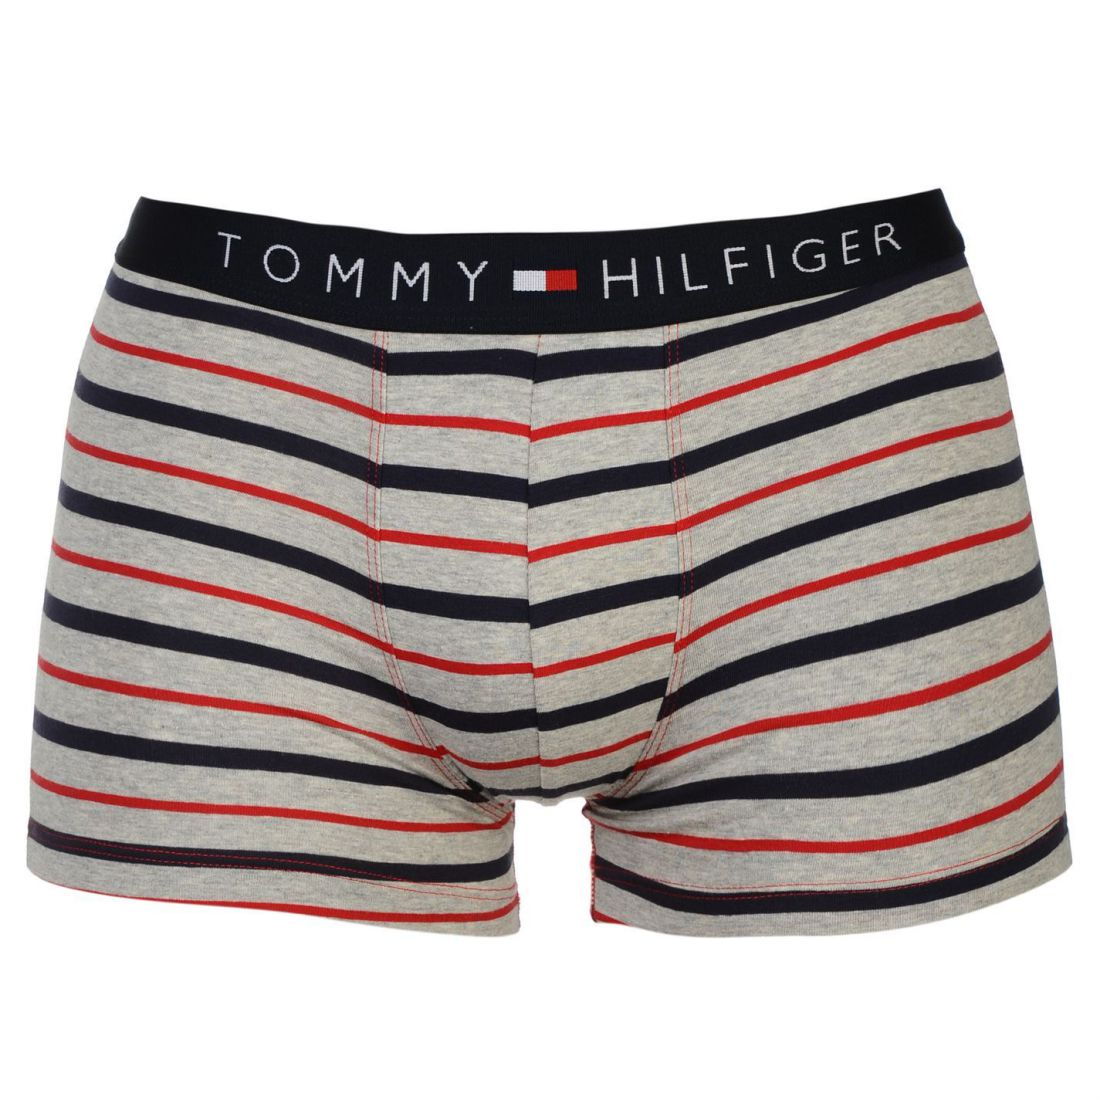 bce2059909 Tommy Hilfiger Mens Stripe Trunk Briefs Boxer Underwear Clothing Accessory